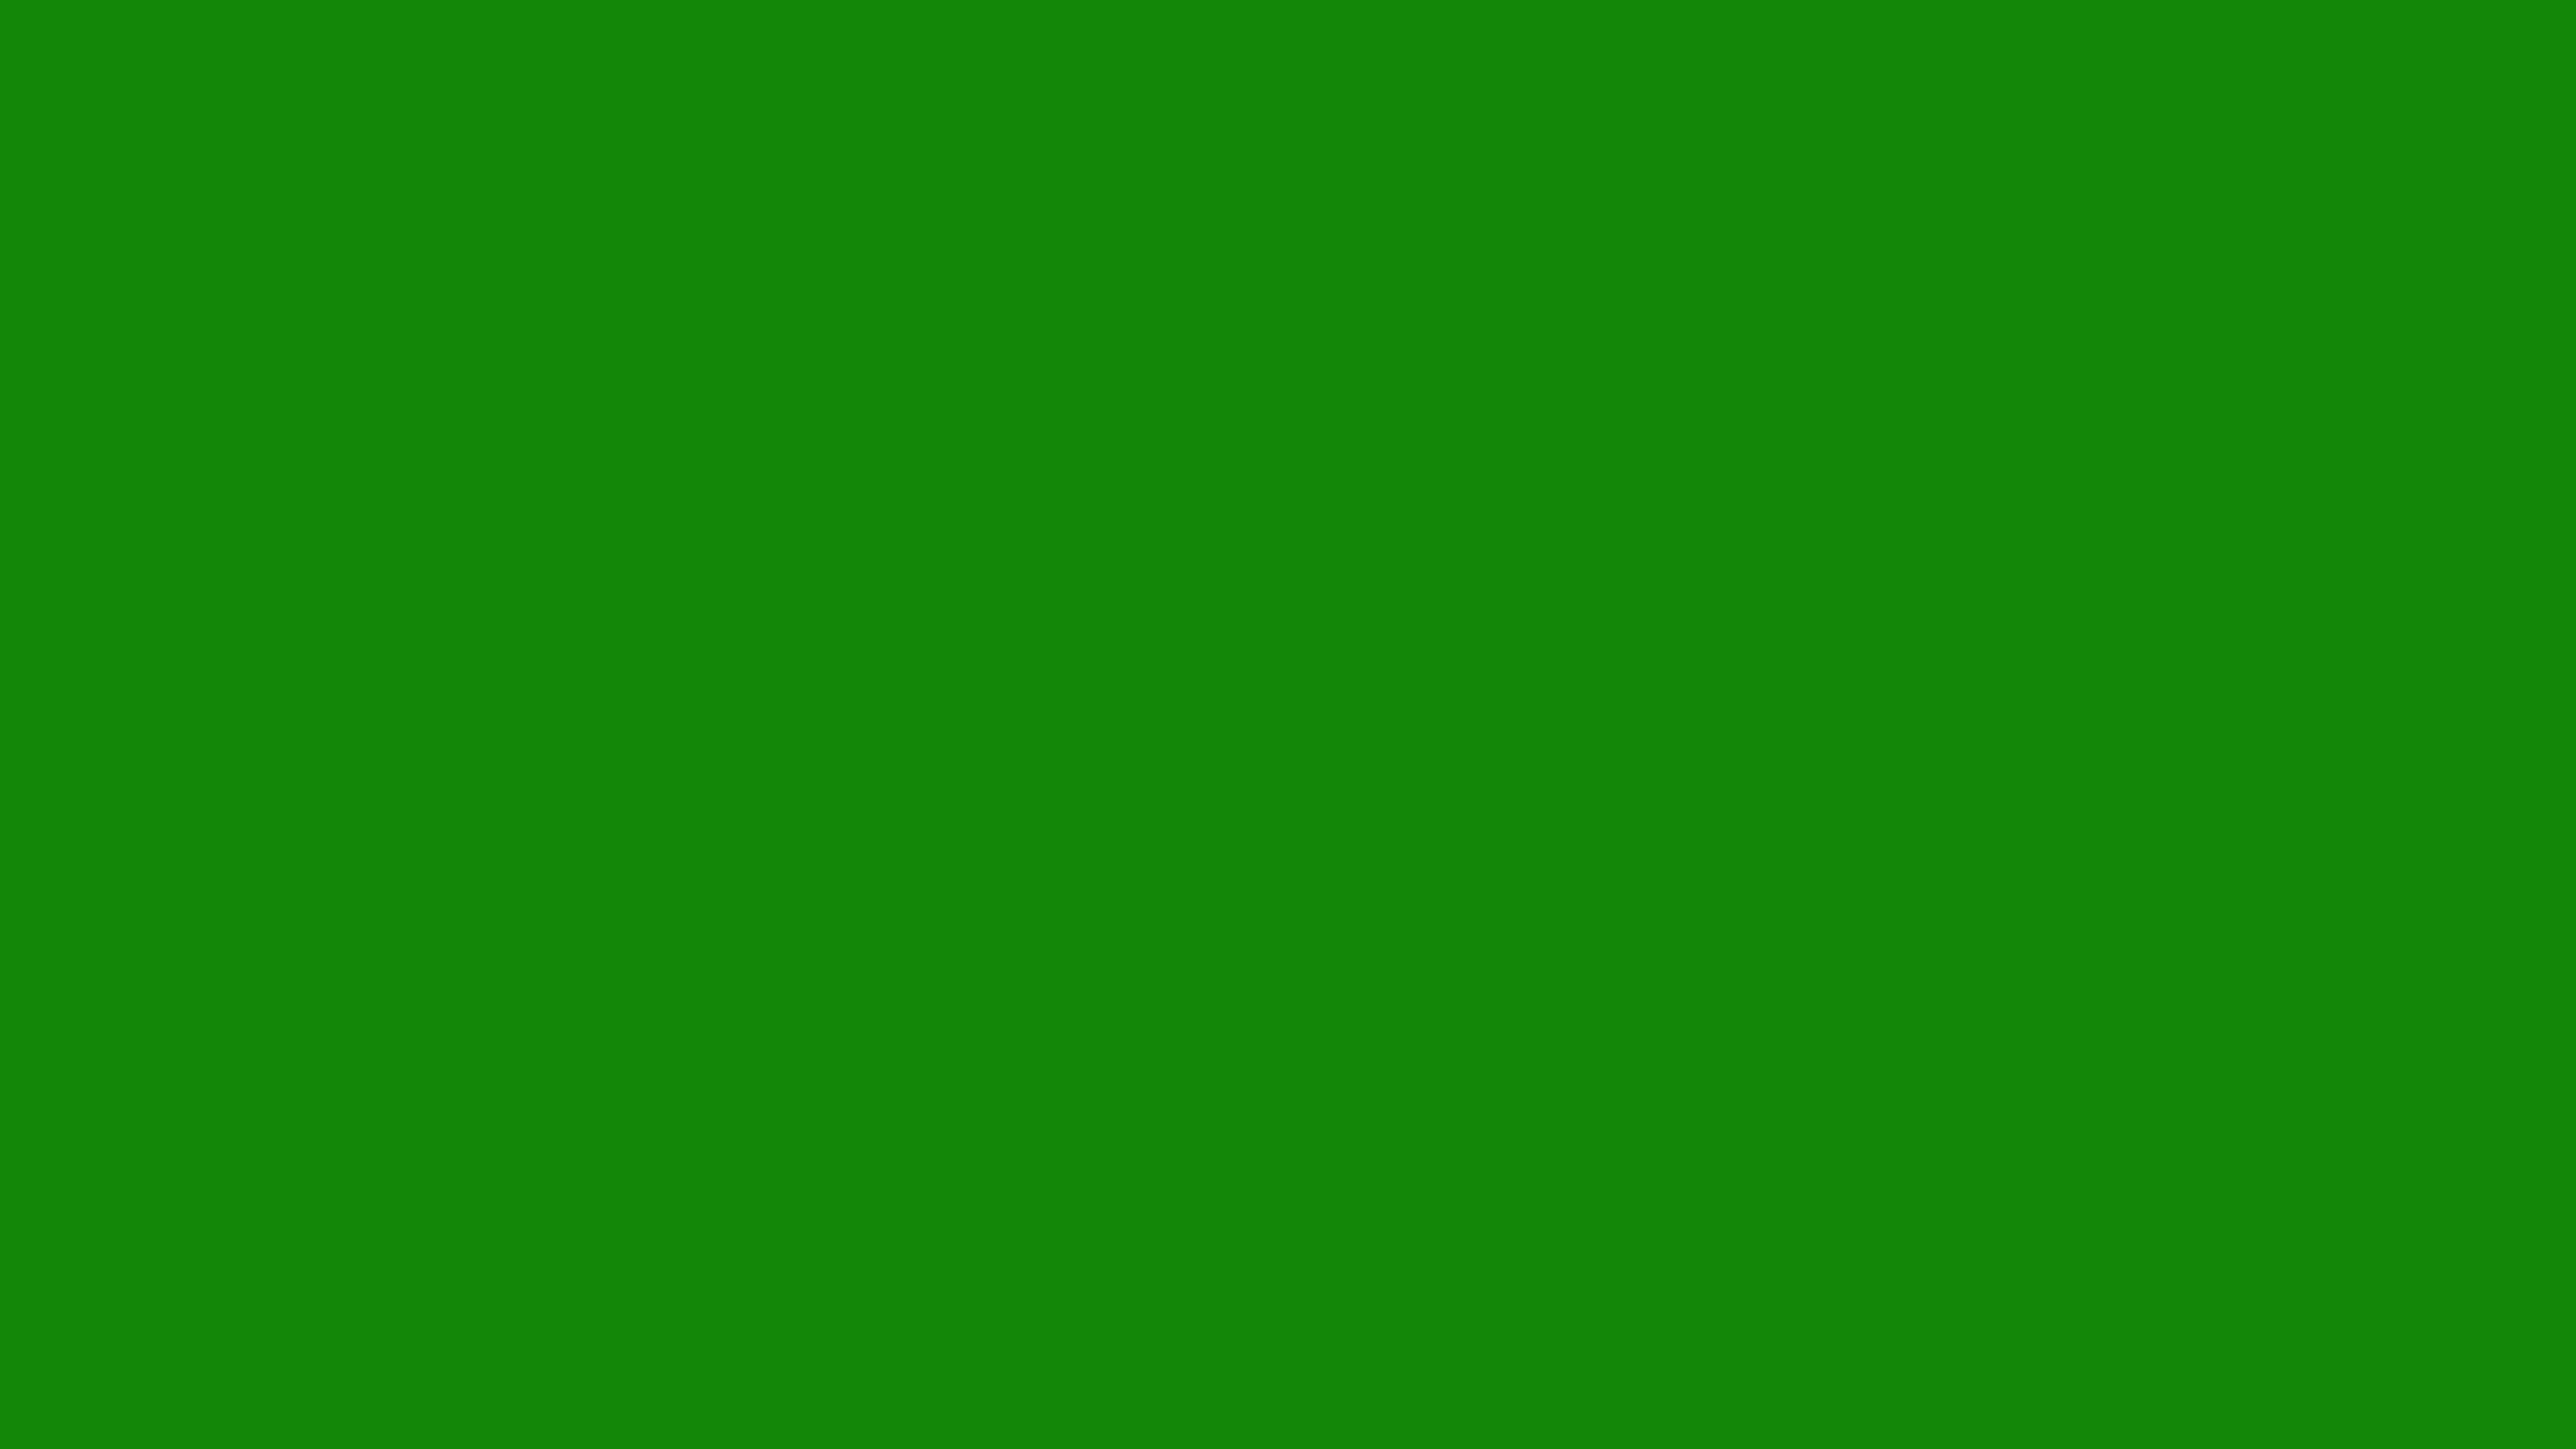 4096x2304 India Green Solid Color Background